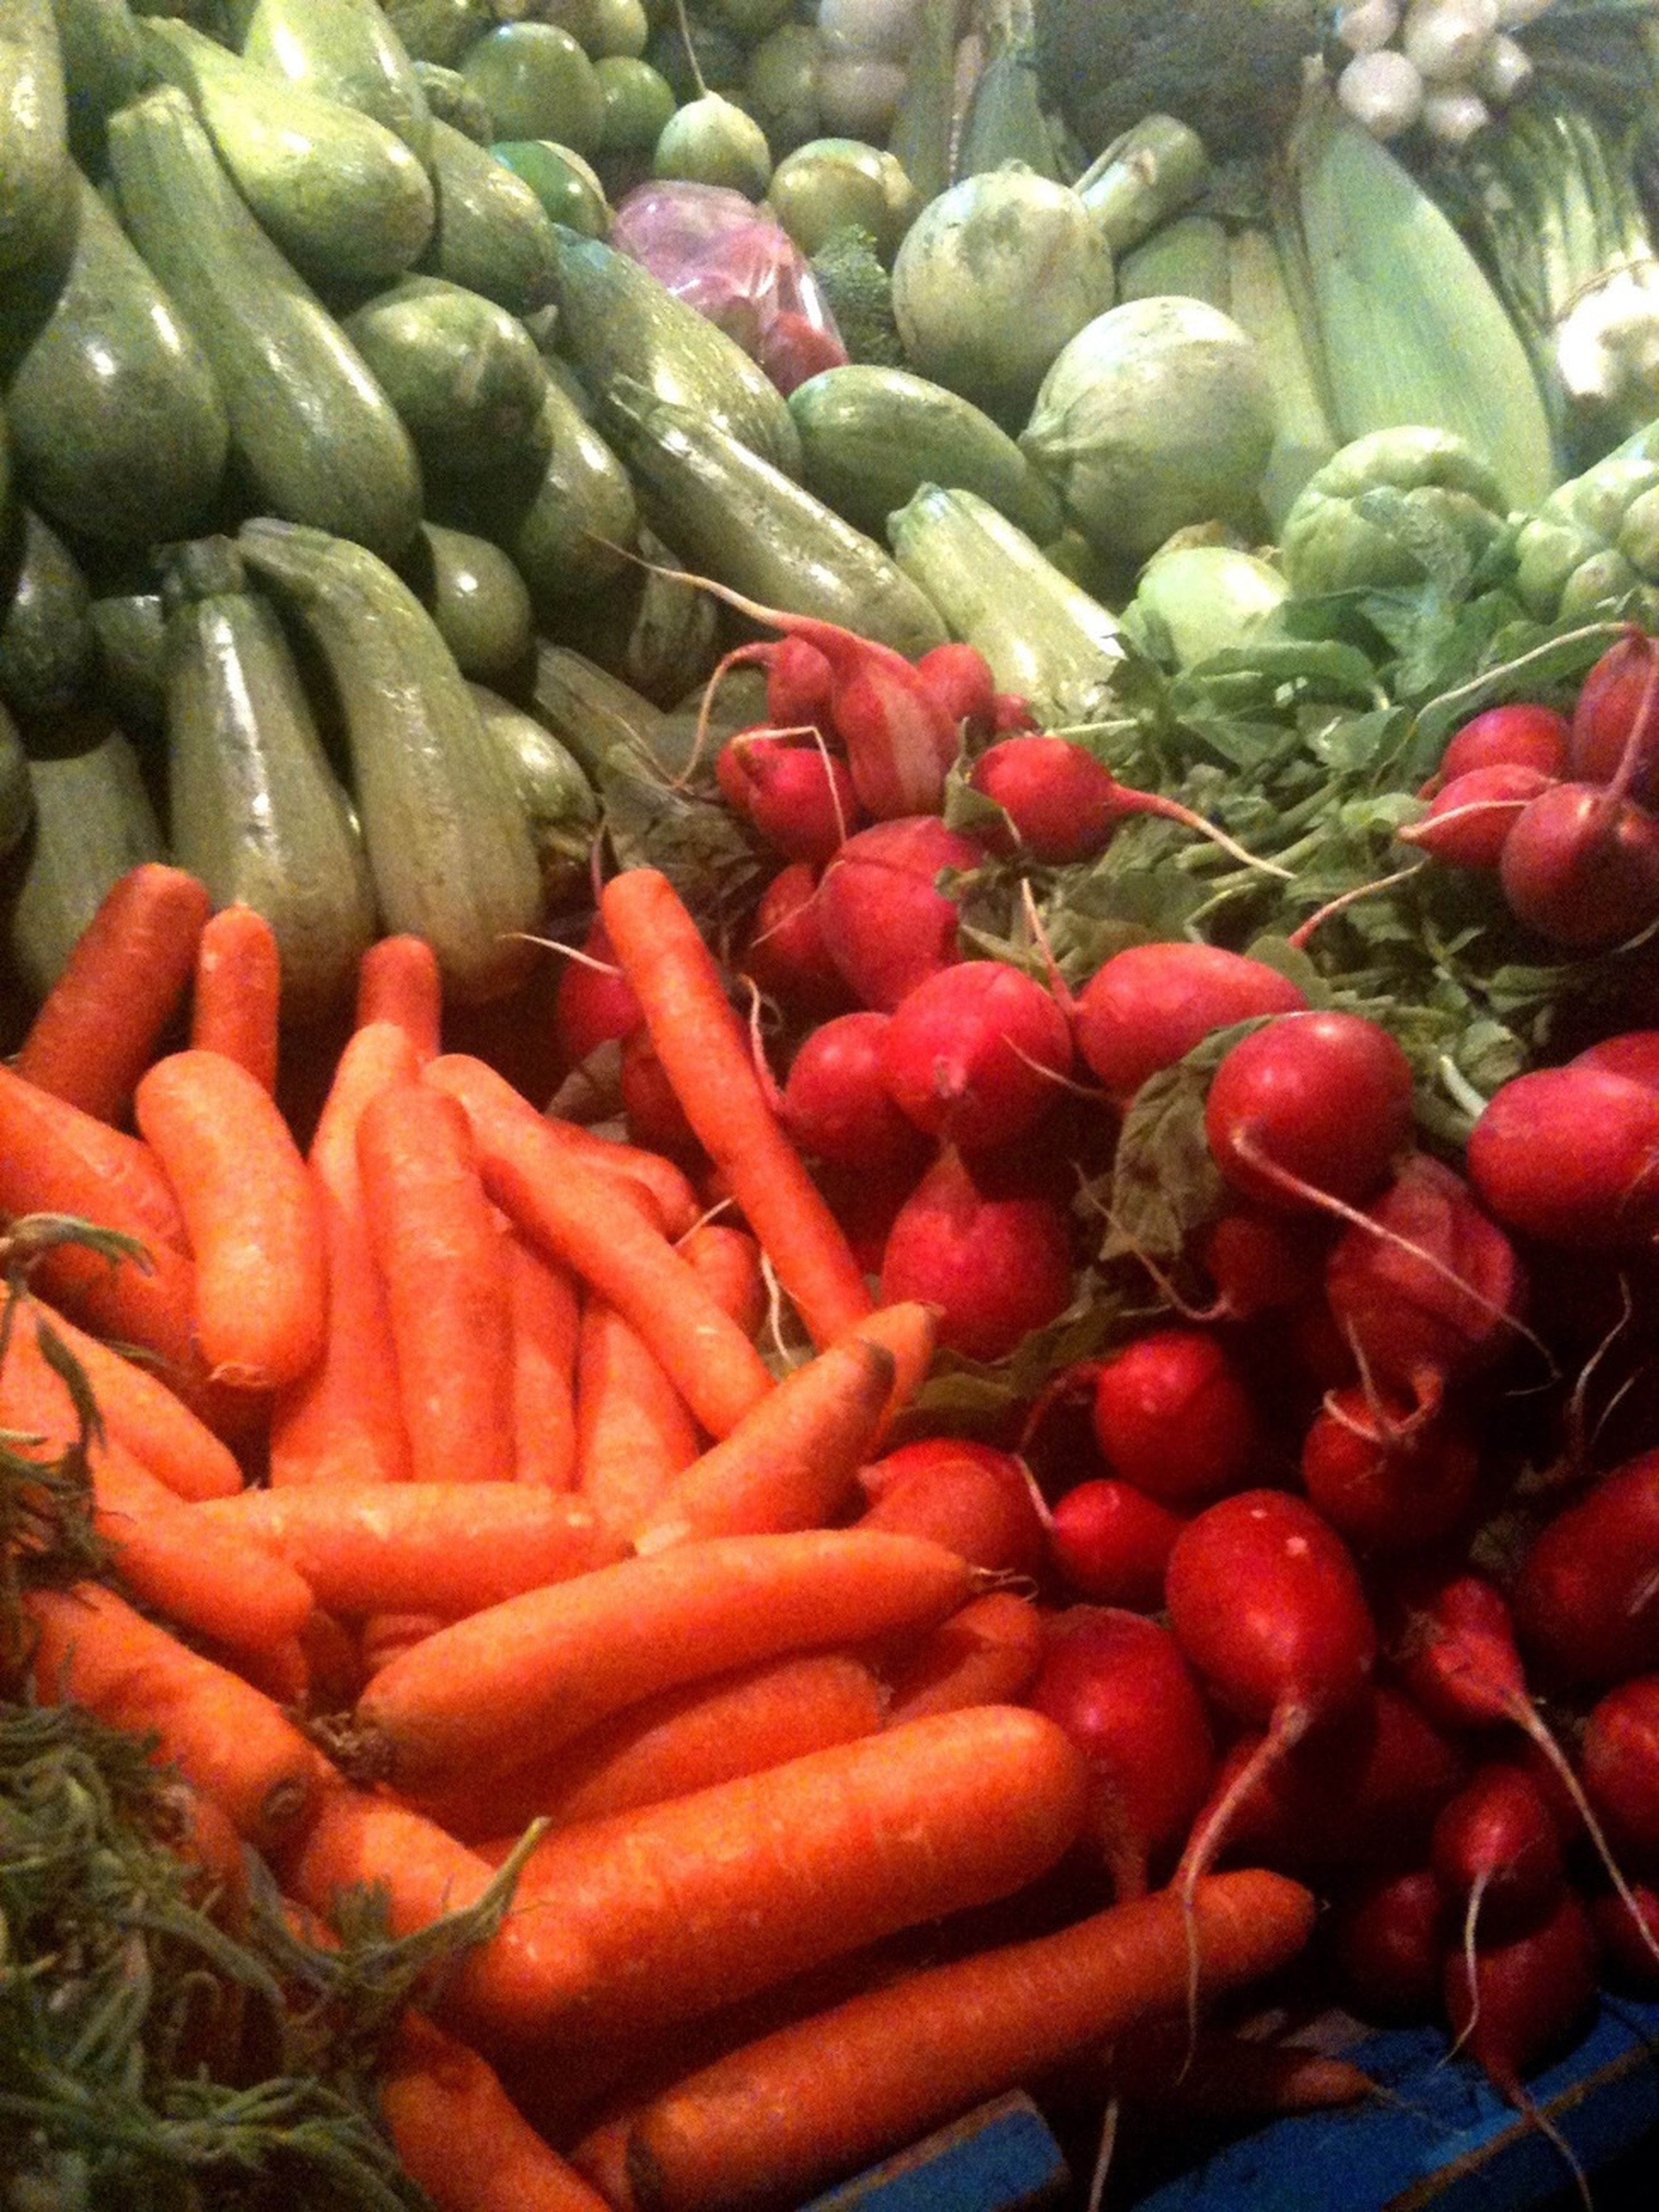 freshness, healthy eating, food and drink, food, full frame, abundance, large group of objects, vegetable, for sale, backgrounds, red, market, market stall, retail, high angle view, still life, raw food, heap, organic, close-up